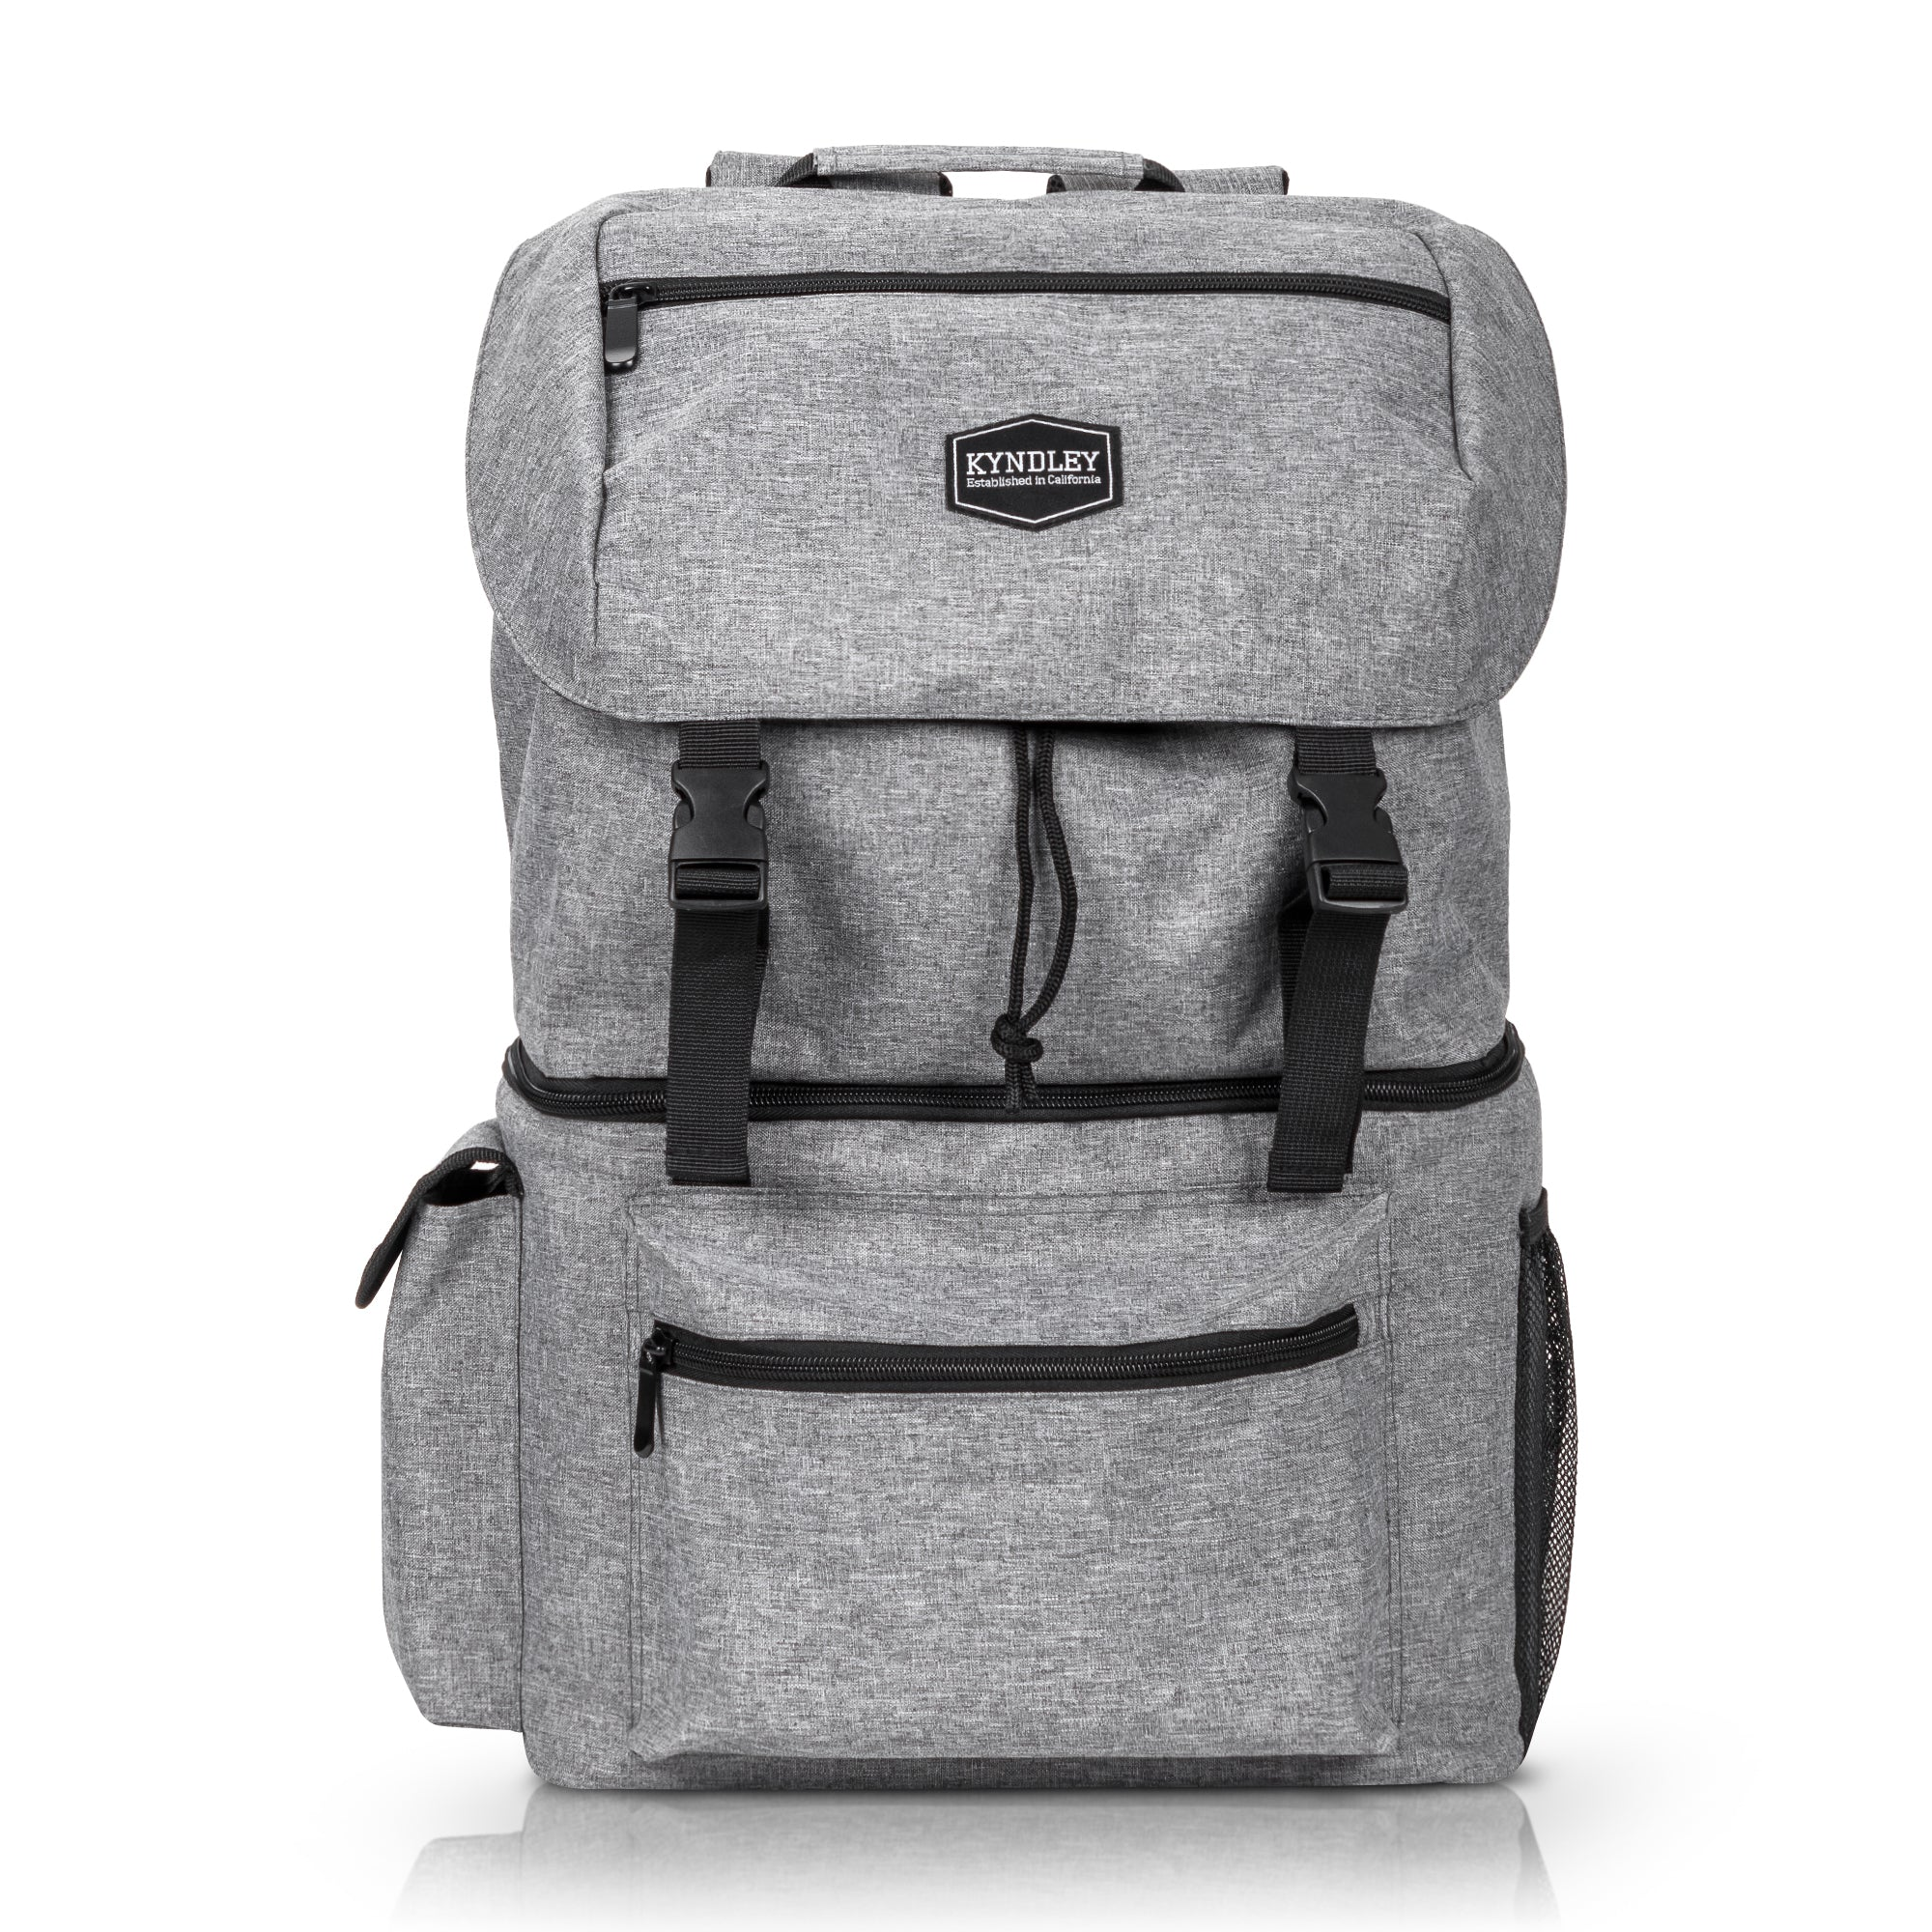 Backpack Leakproof Insulated Soft Lightweight Durable Cooler Gray Bag